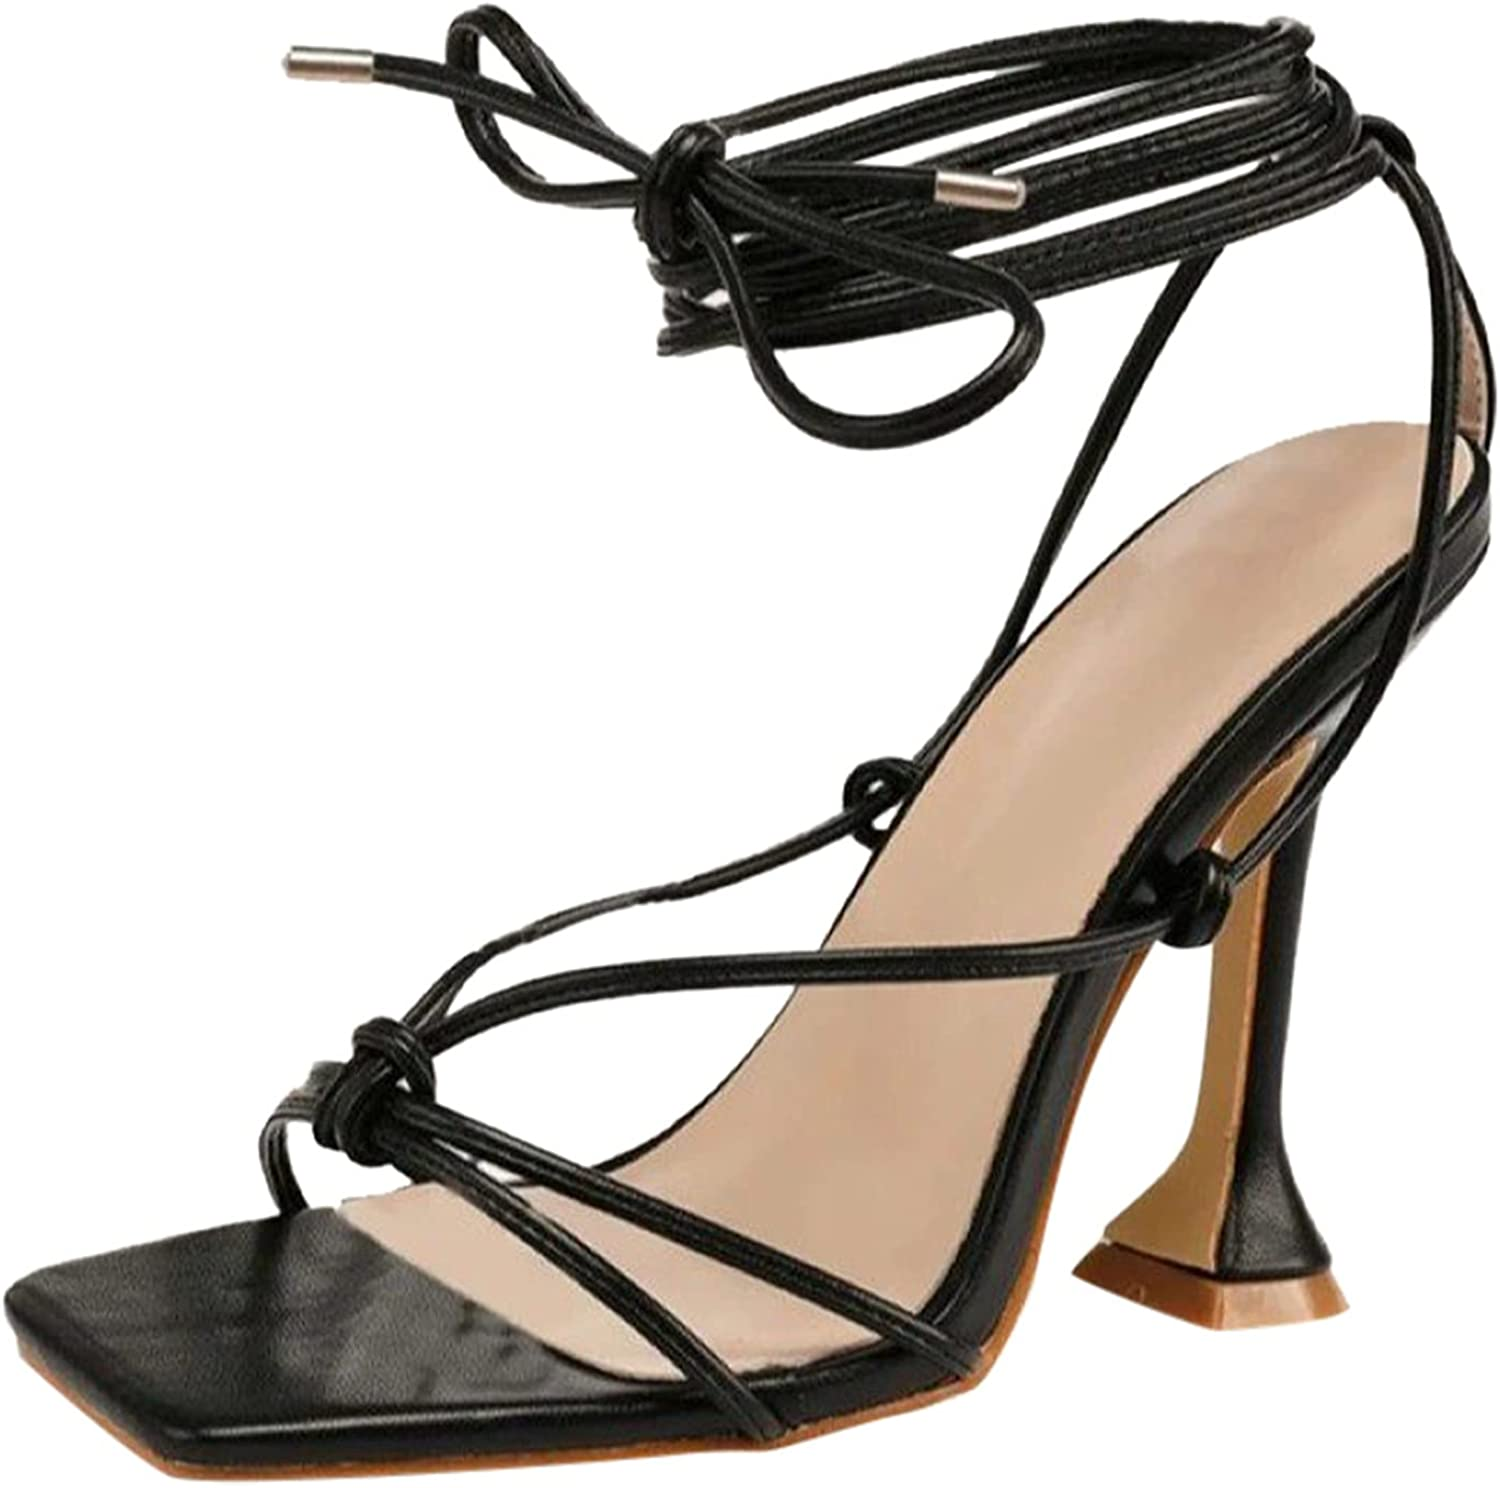 KAIXINDAJ Women's Chunky High Heel Sandals Casual Breathable Outdoor Leisure Strappy Open Toe Ankle Strap Dress Shoes for Women Wedding Bridal Evening Homecoming Prom